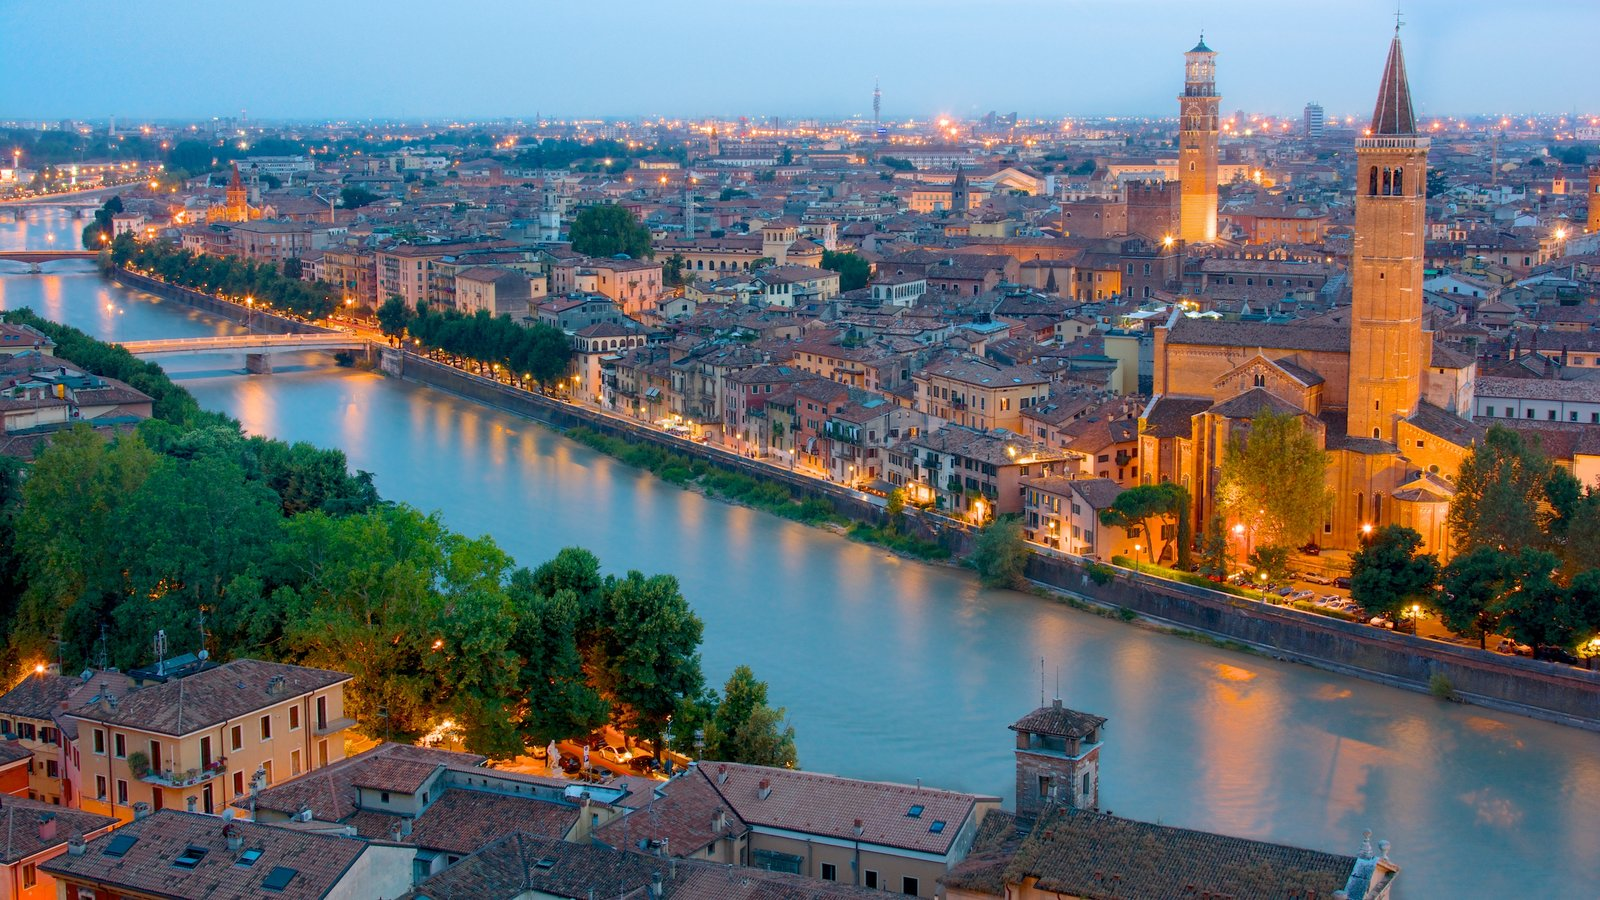 Verona showing heritage architecture, a river or creek and views